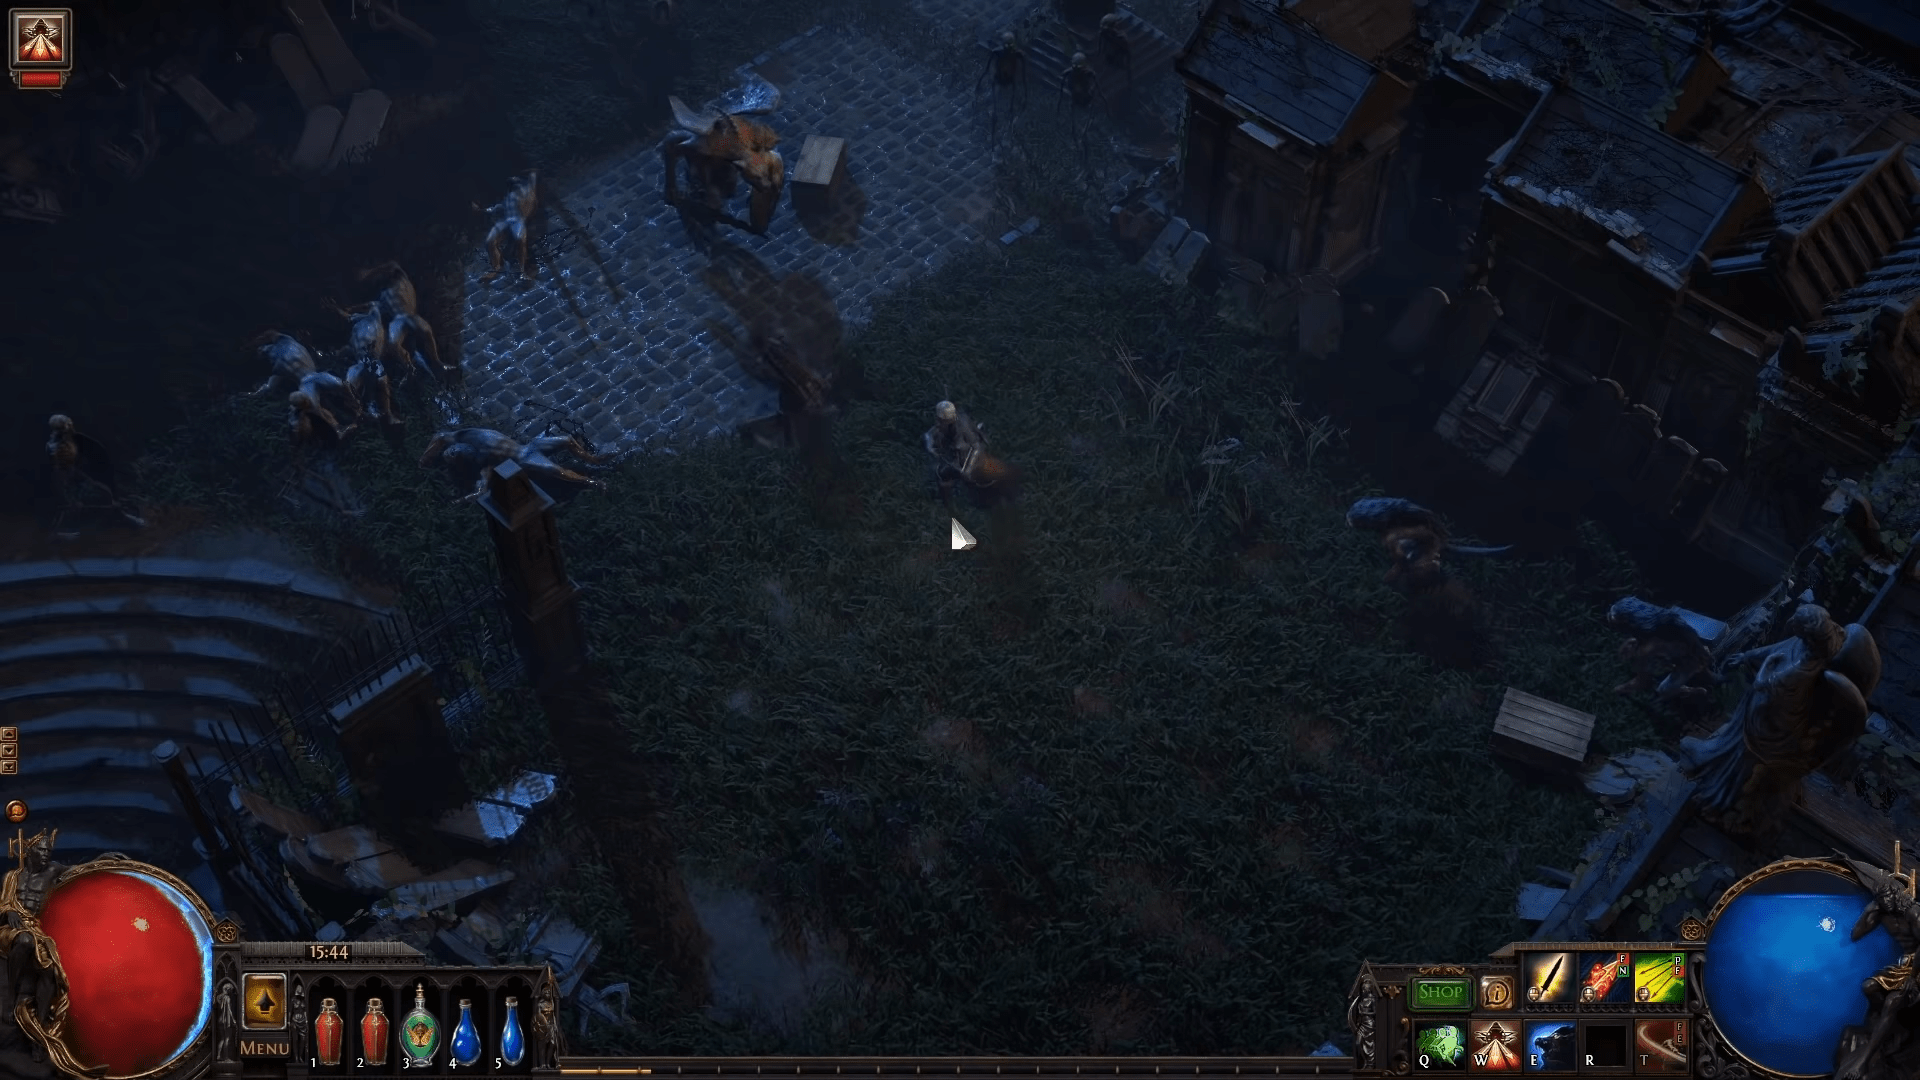 Path Of Exile 2 Announced In First Day Of Annual Exilecon, Grinding Gear Games Offers Sneak Peek